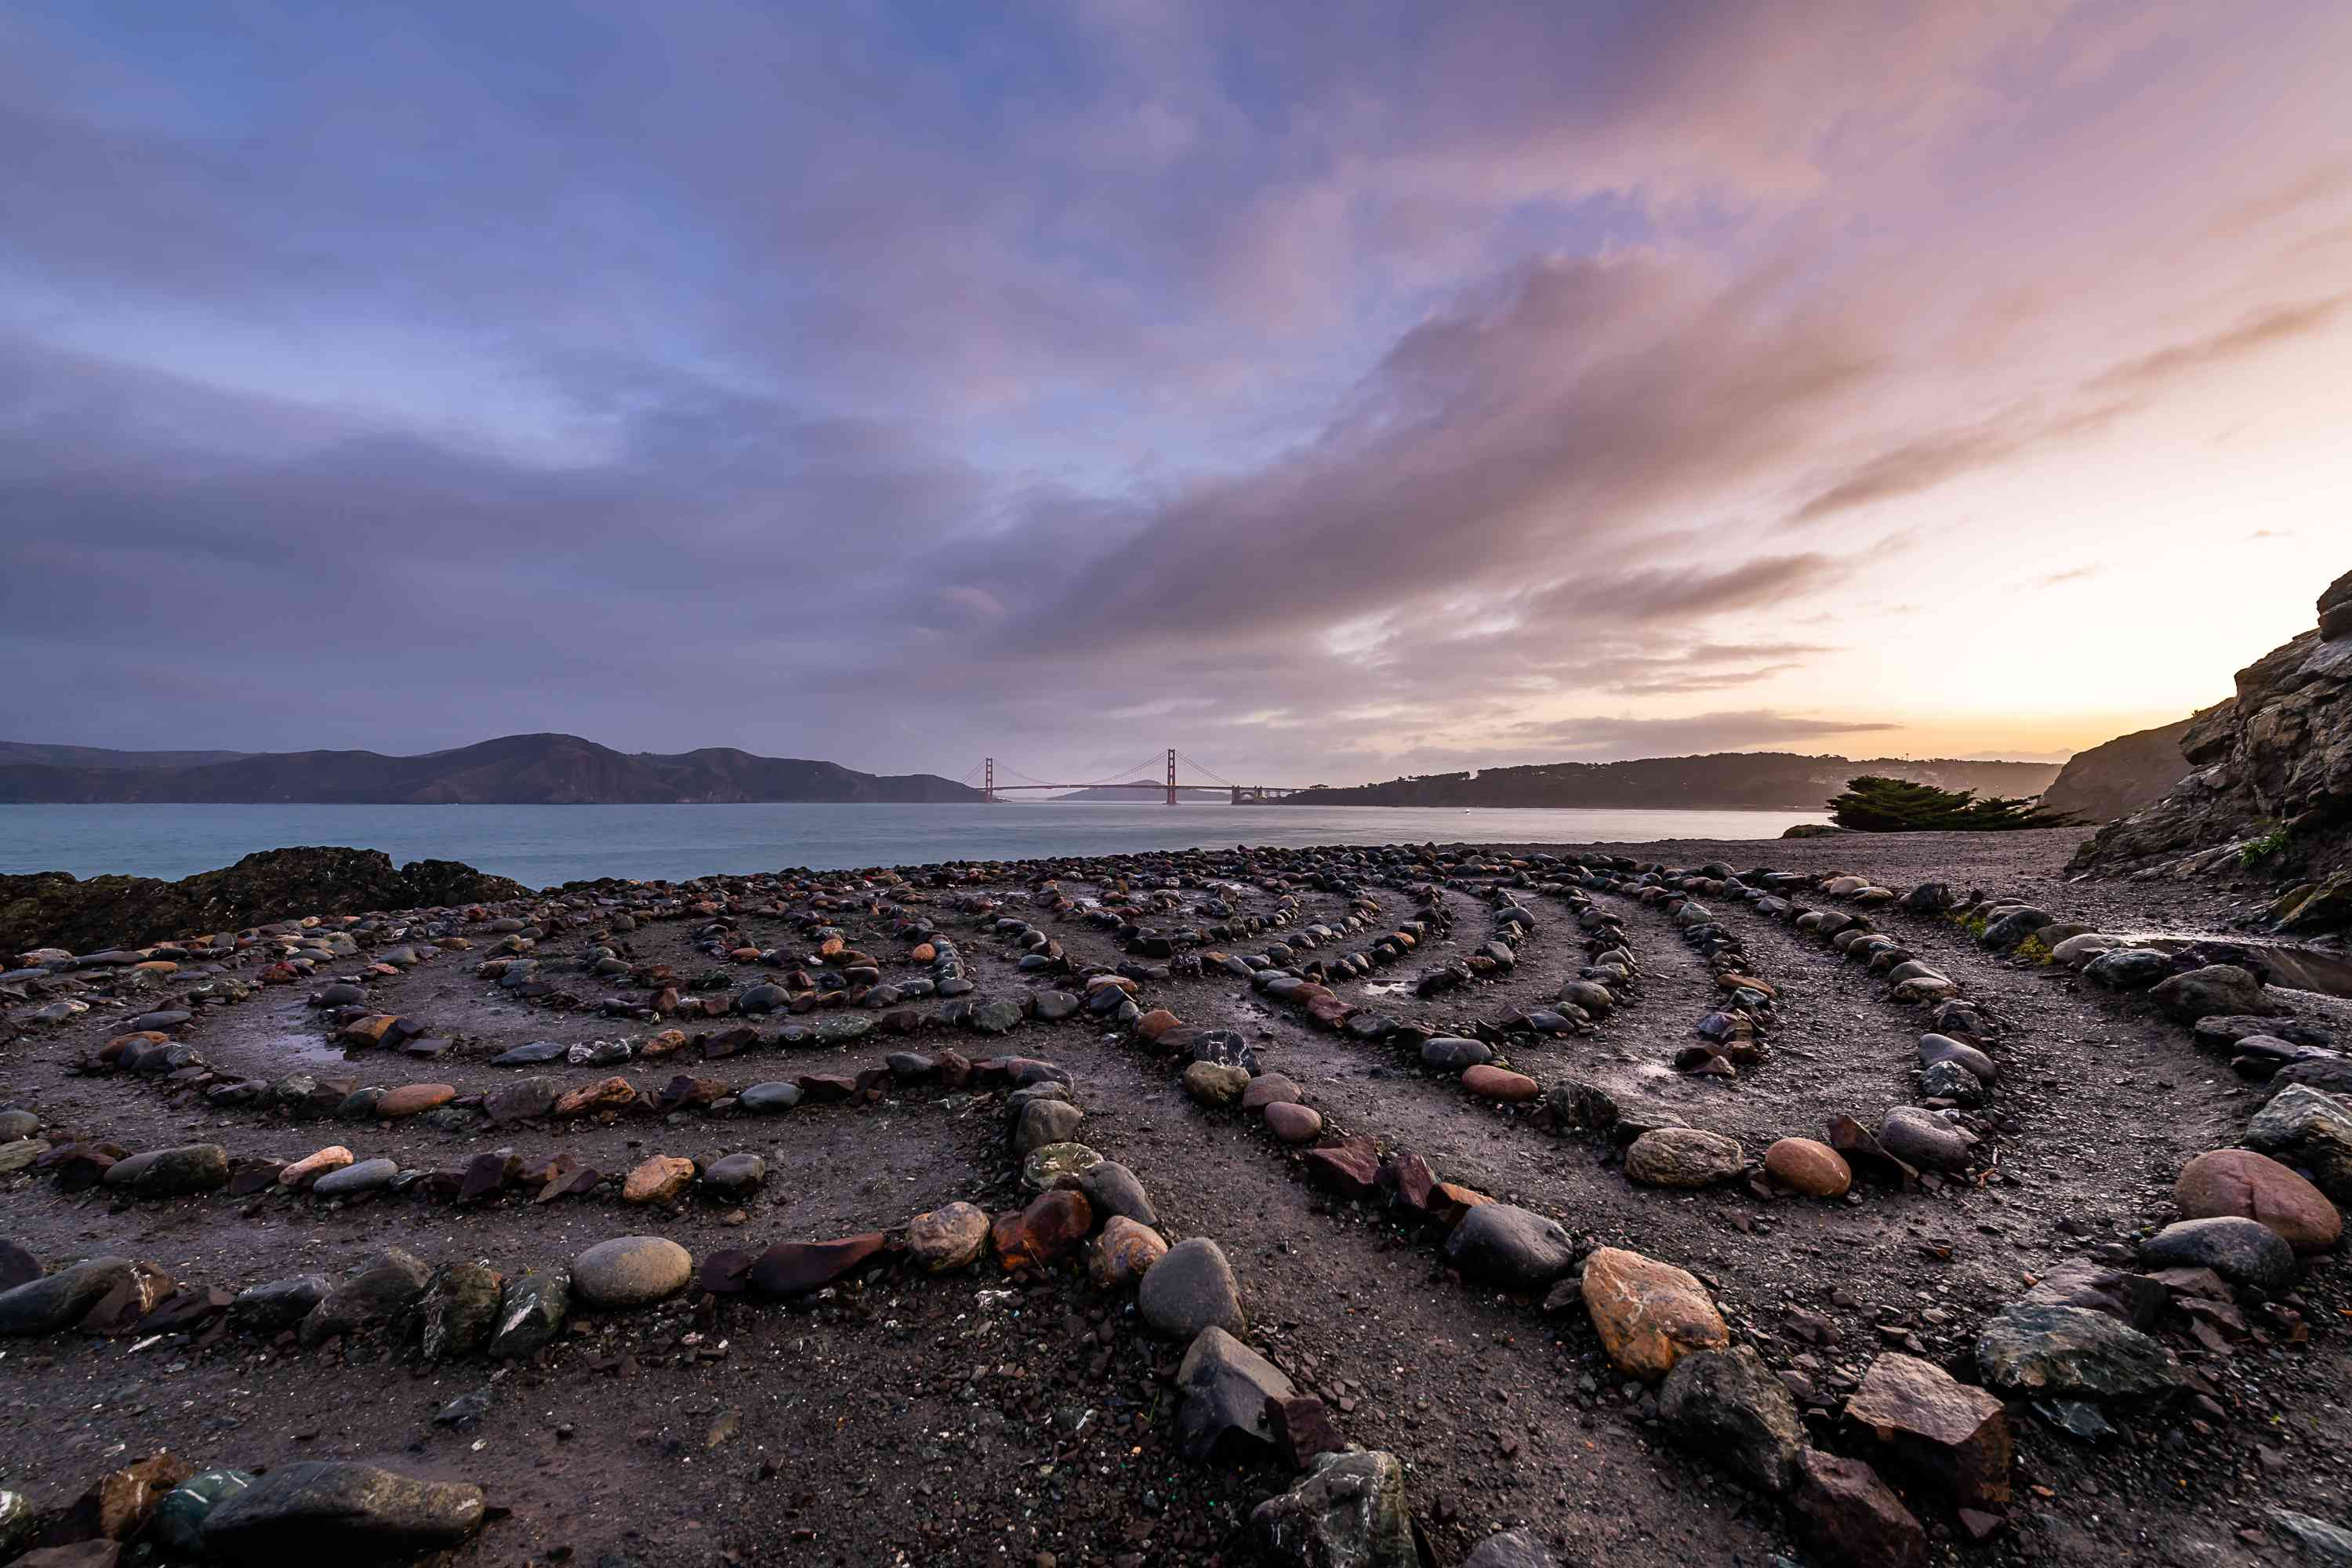 The Lands End Labyrinth at Mile Rock Beach in San Francisco